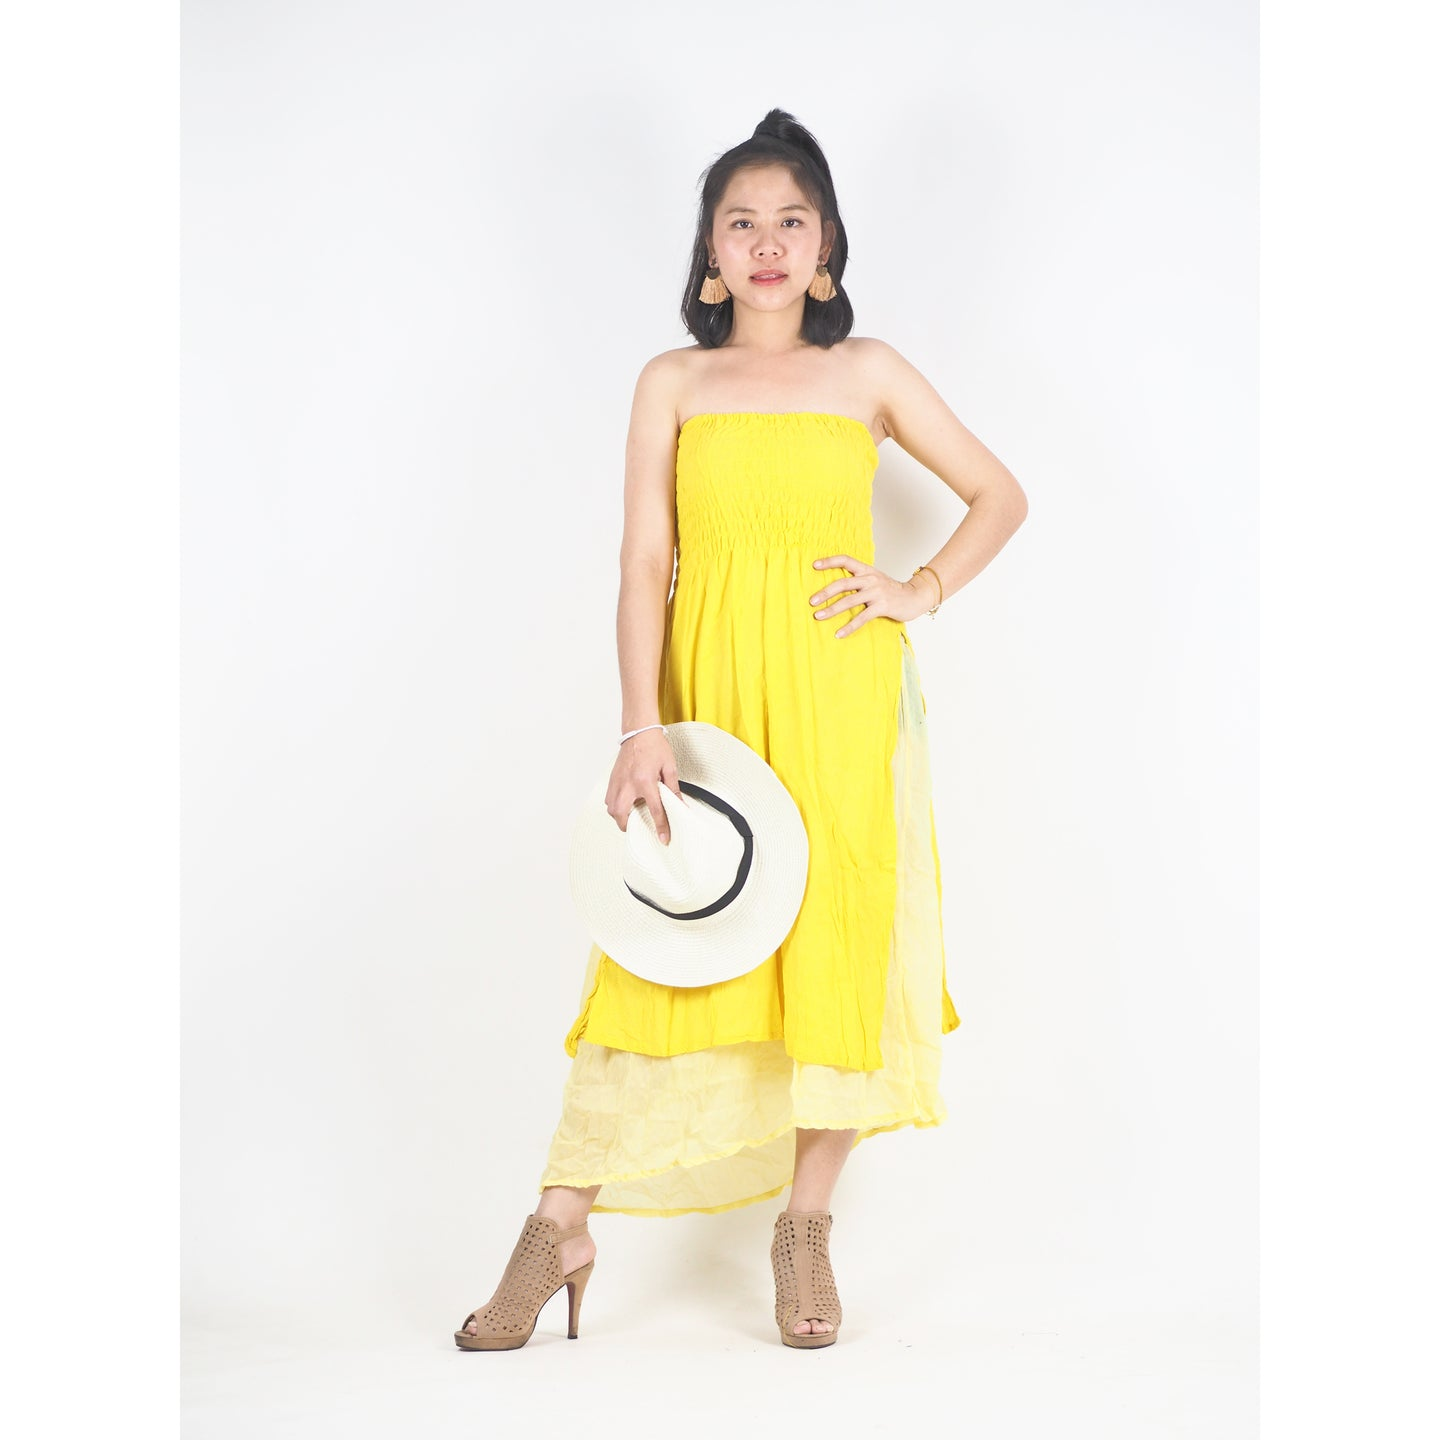 Solid Color Women's Dresses in Yellow DR0439 060000 23